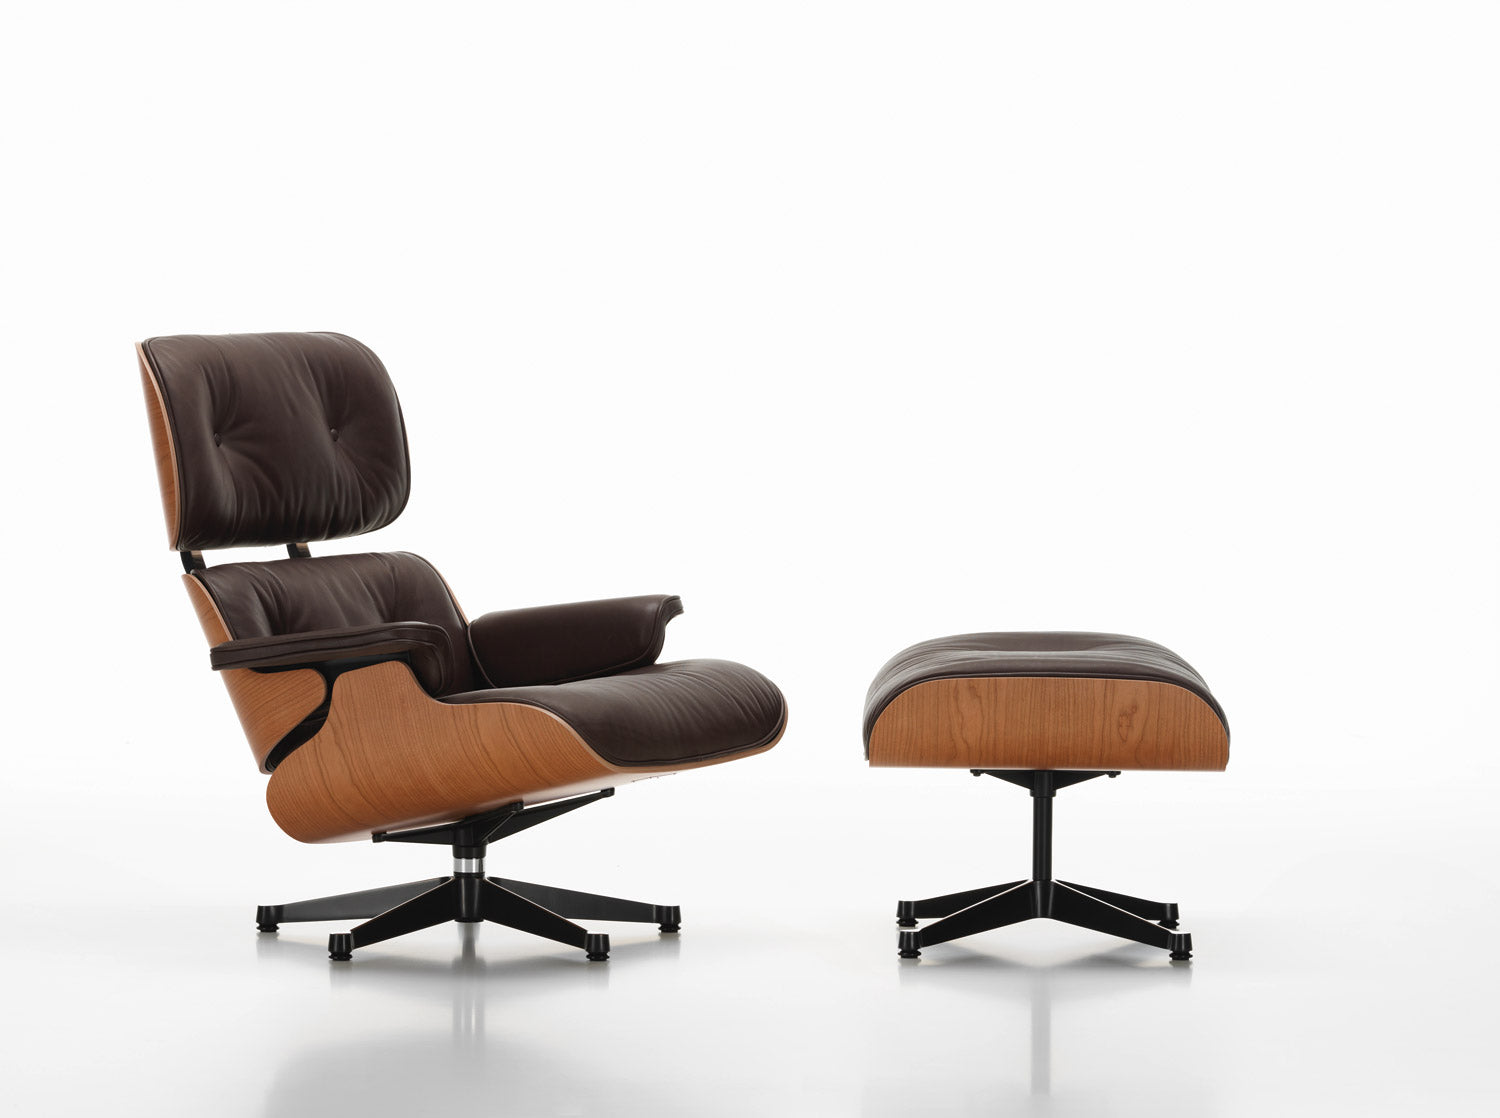 Enjoyable Eames Lounge Chair Santos Palisander Couch Potato Company Pdpeps Interior Chair Design Pdpepsorg